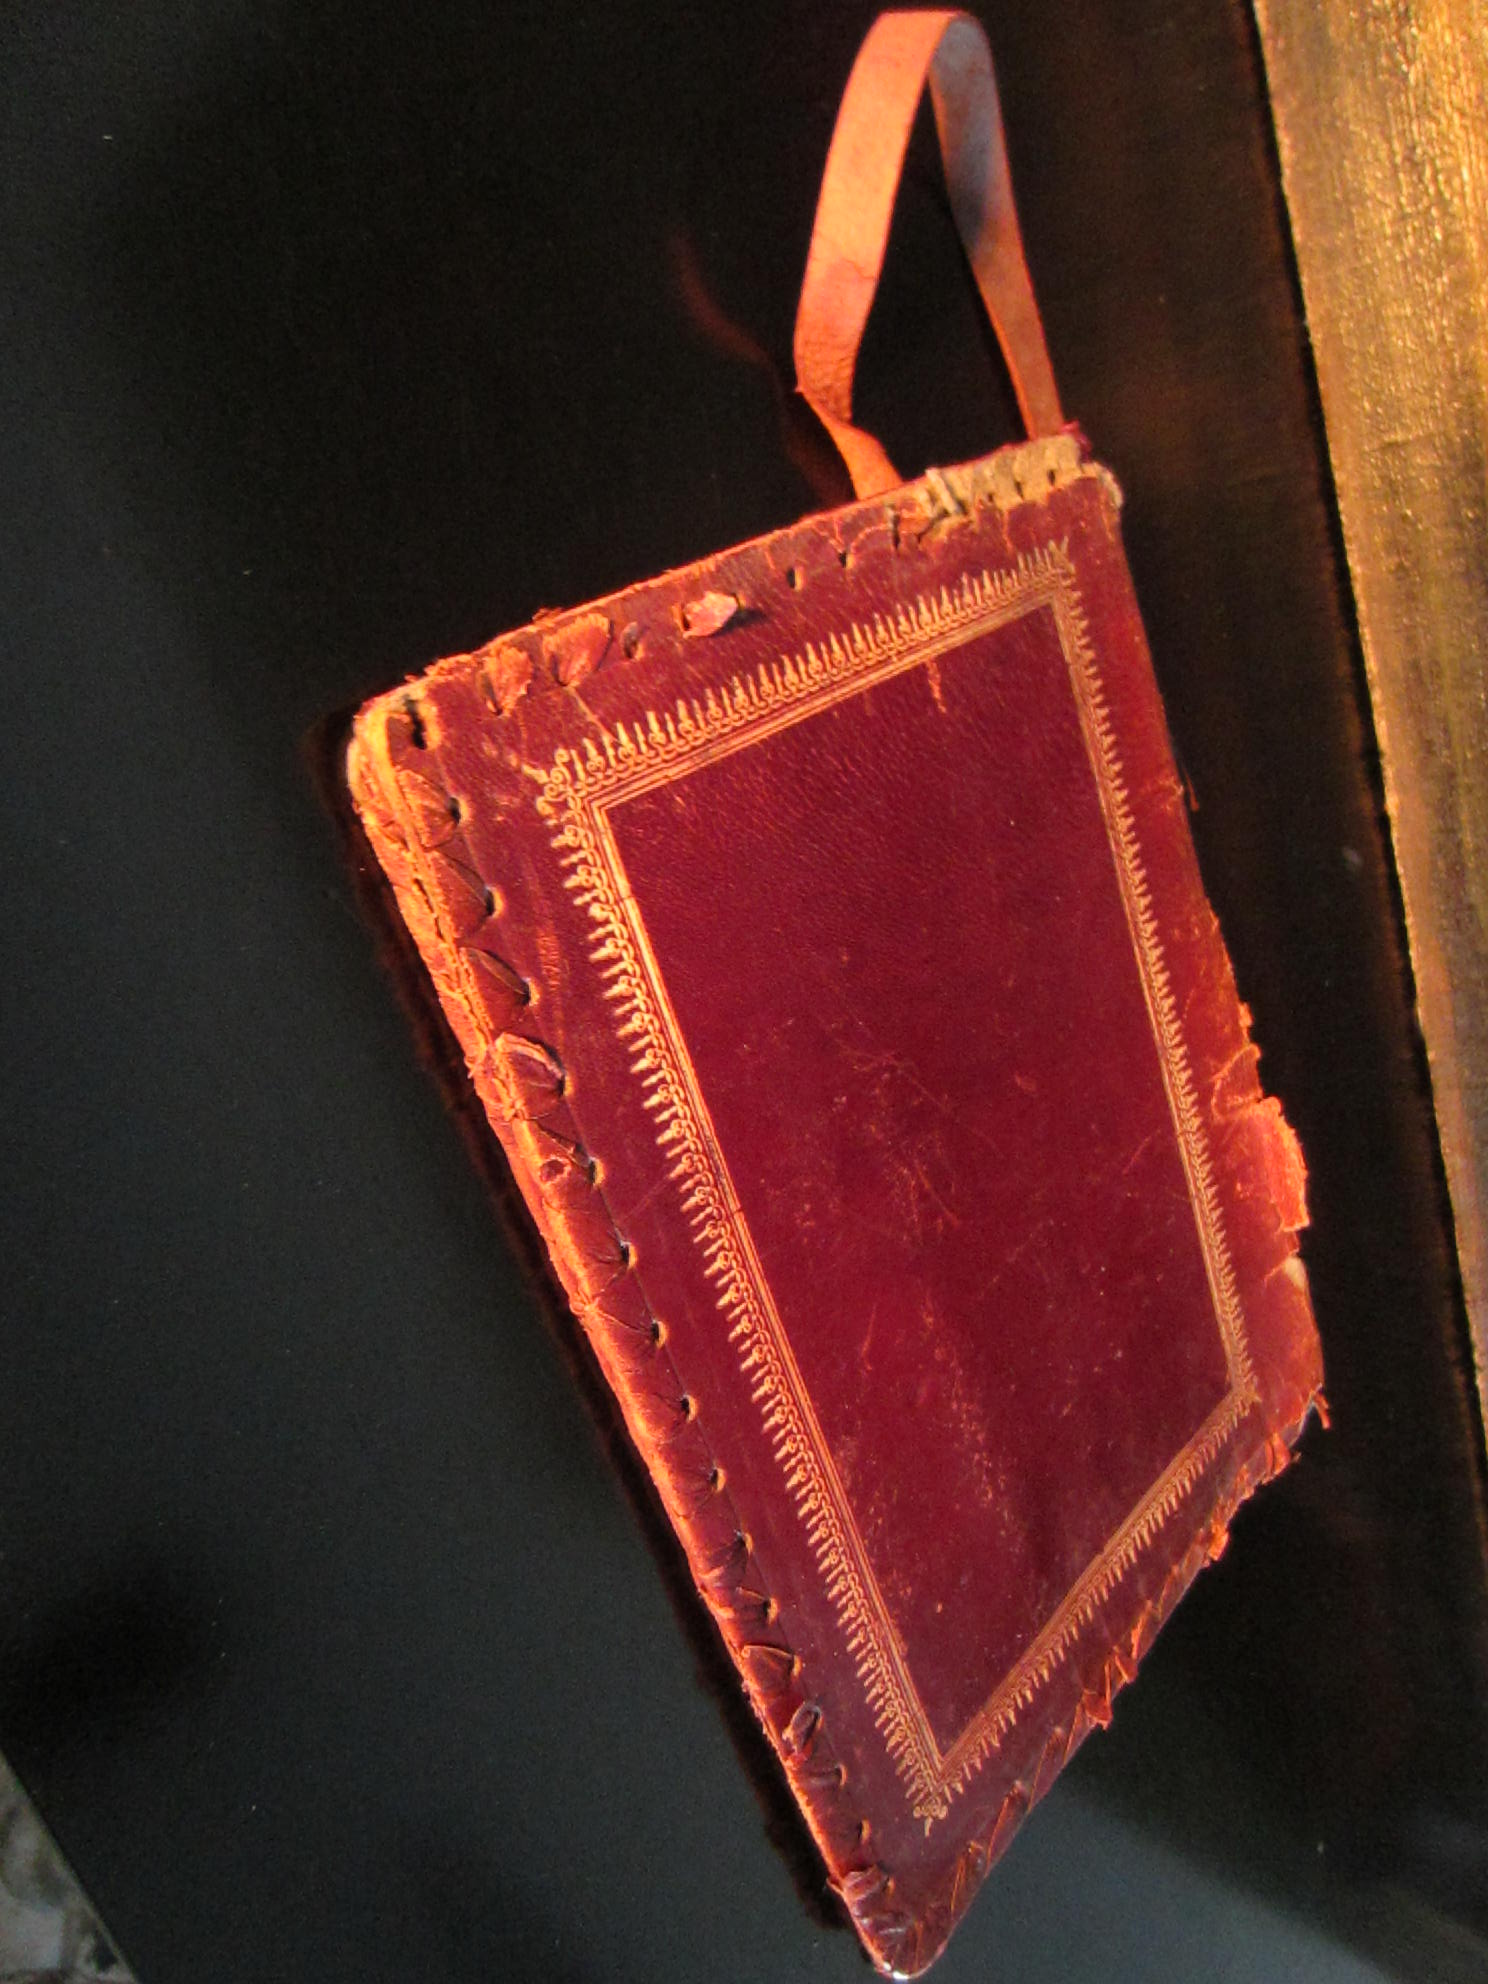 Old Book Covers For Sale ~ Made in italy red leather emboss book cover for sale